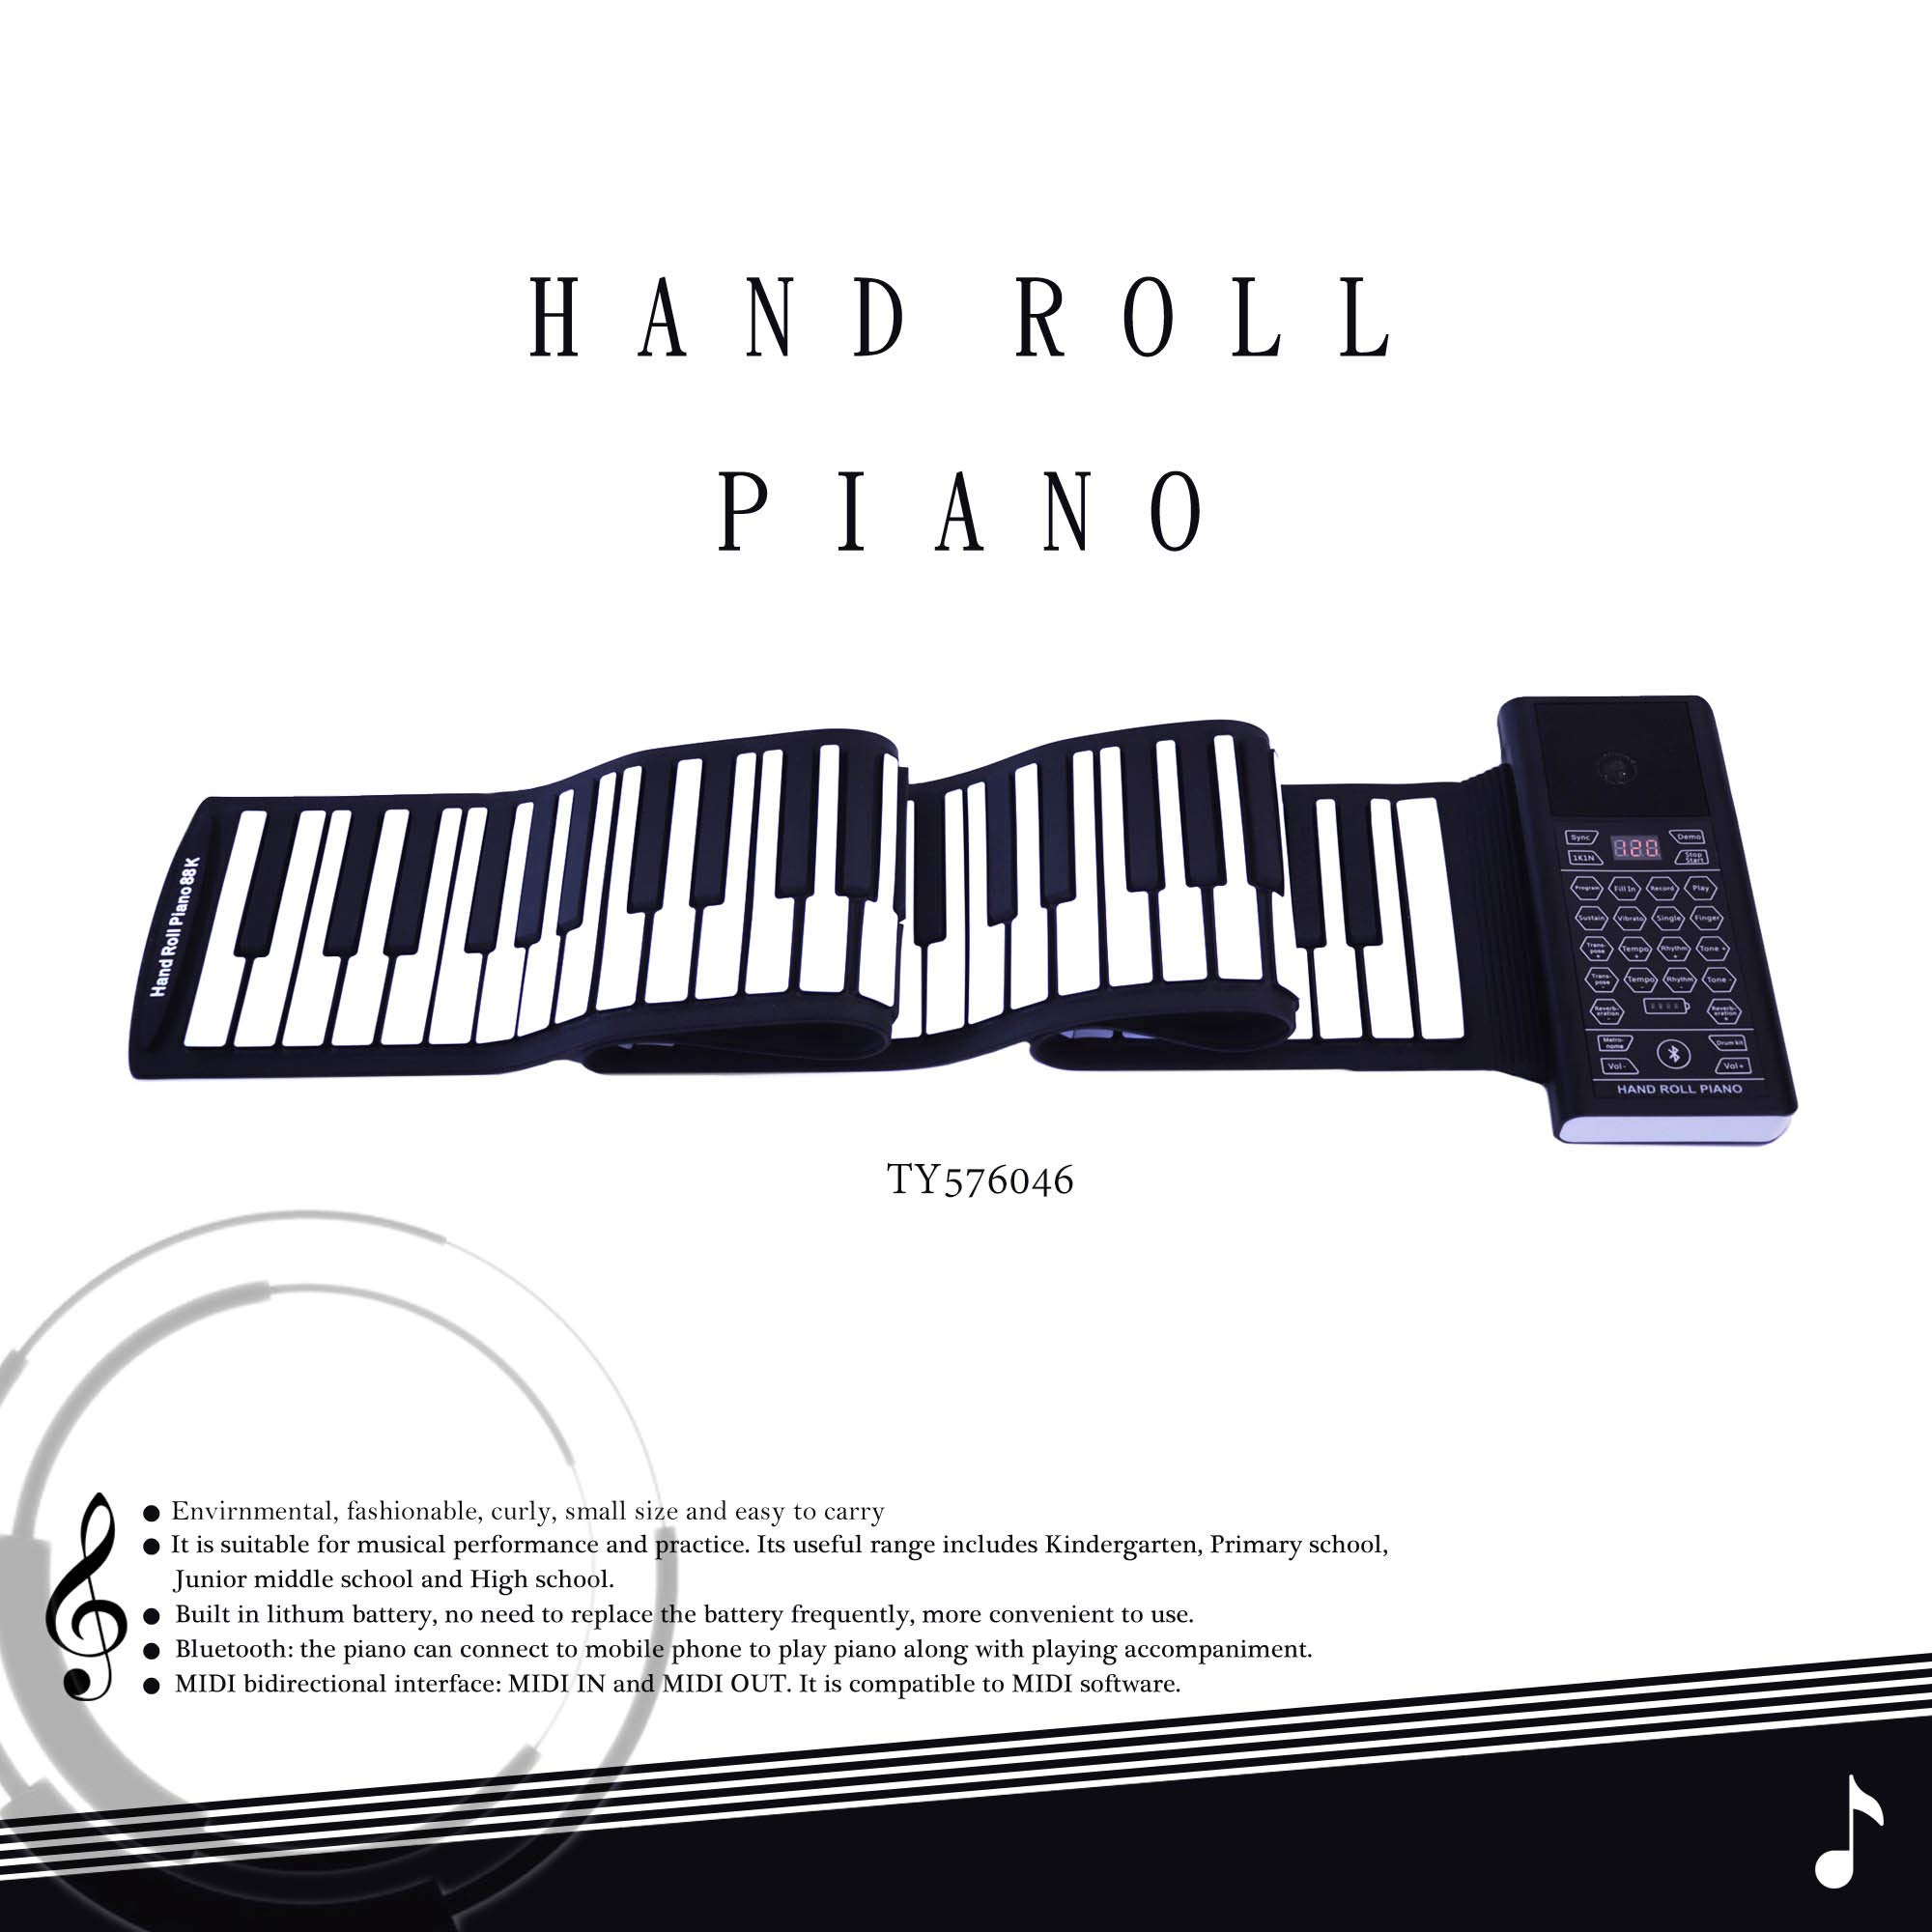 iLearnMusic Roll Up Piano Premium Grade Silicone |THICKENED KEYS | Upgraded Built-in Amplifying Speakers | Portable Piano Keyboard MIDI USB (88 Keys) by Kiker Music (Image #2)